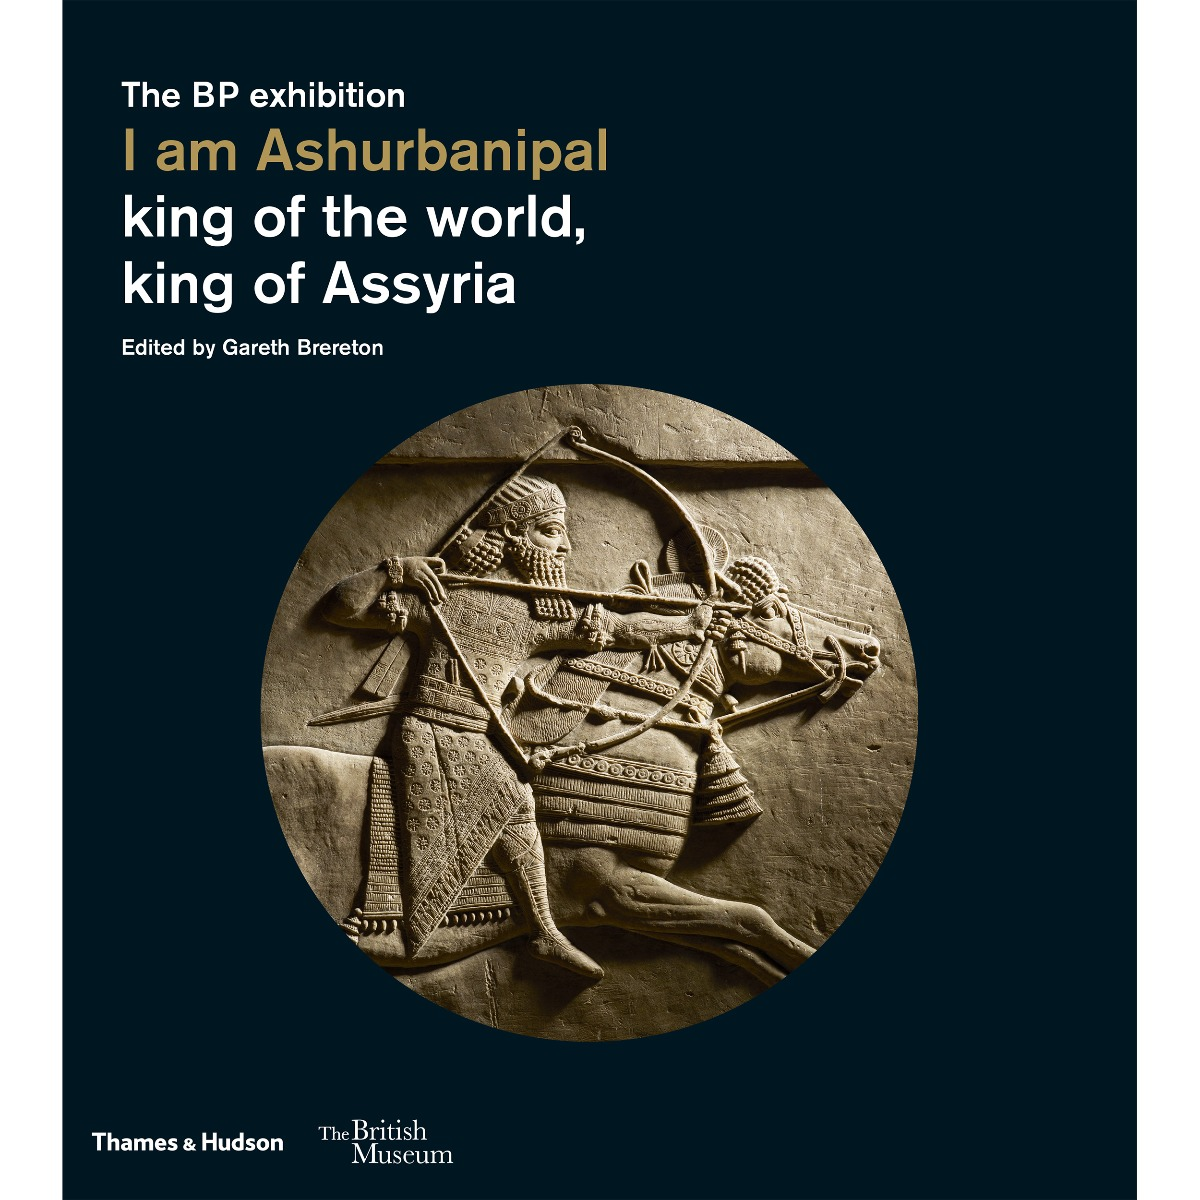 I am Ashurbanipal: king of the world, king of Assyria (hardback or paperback)